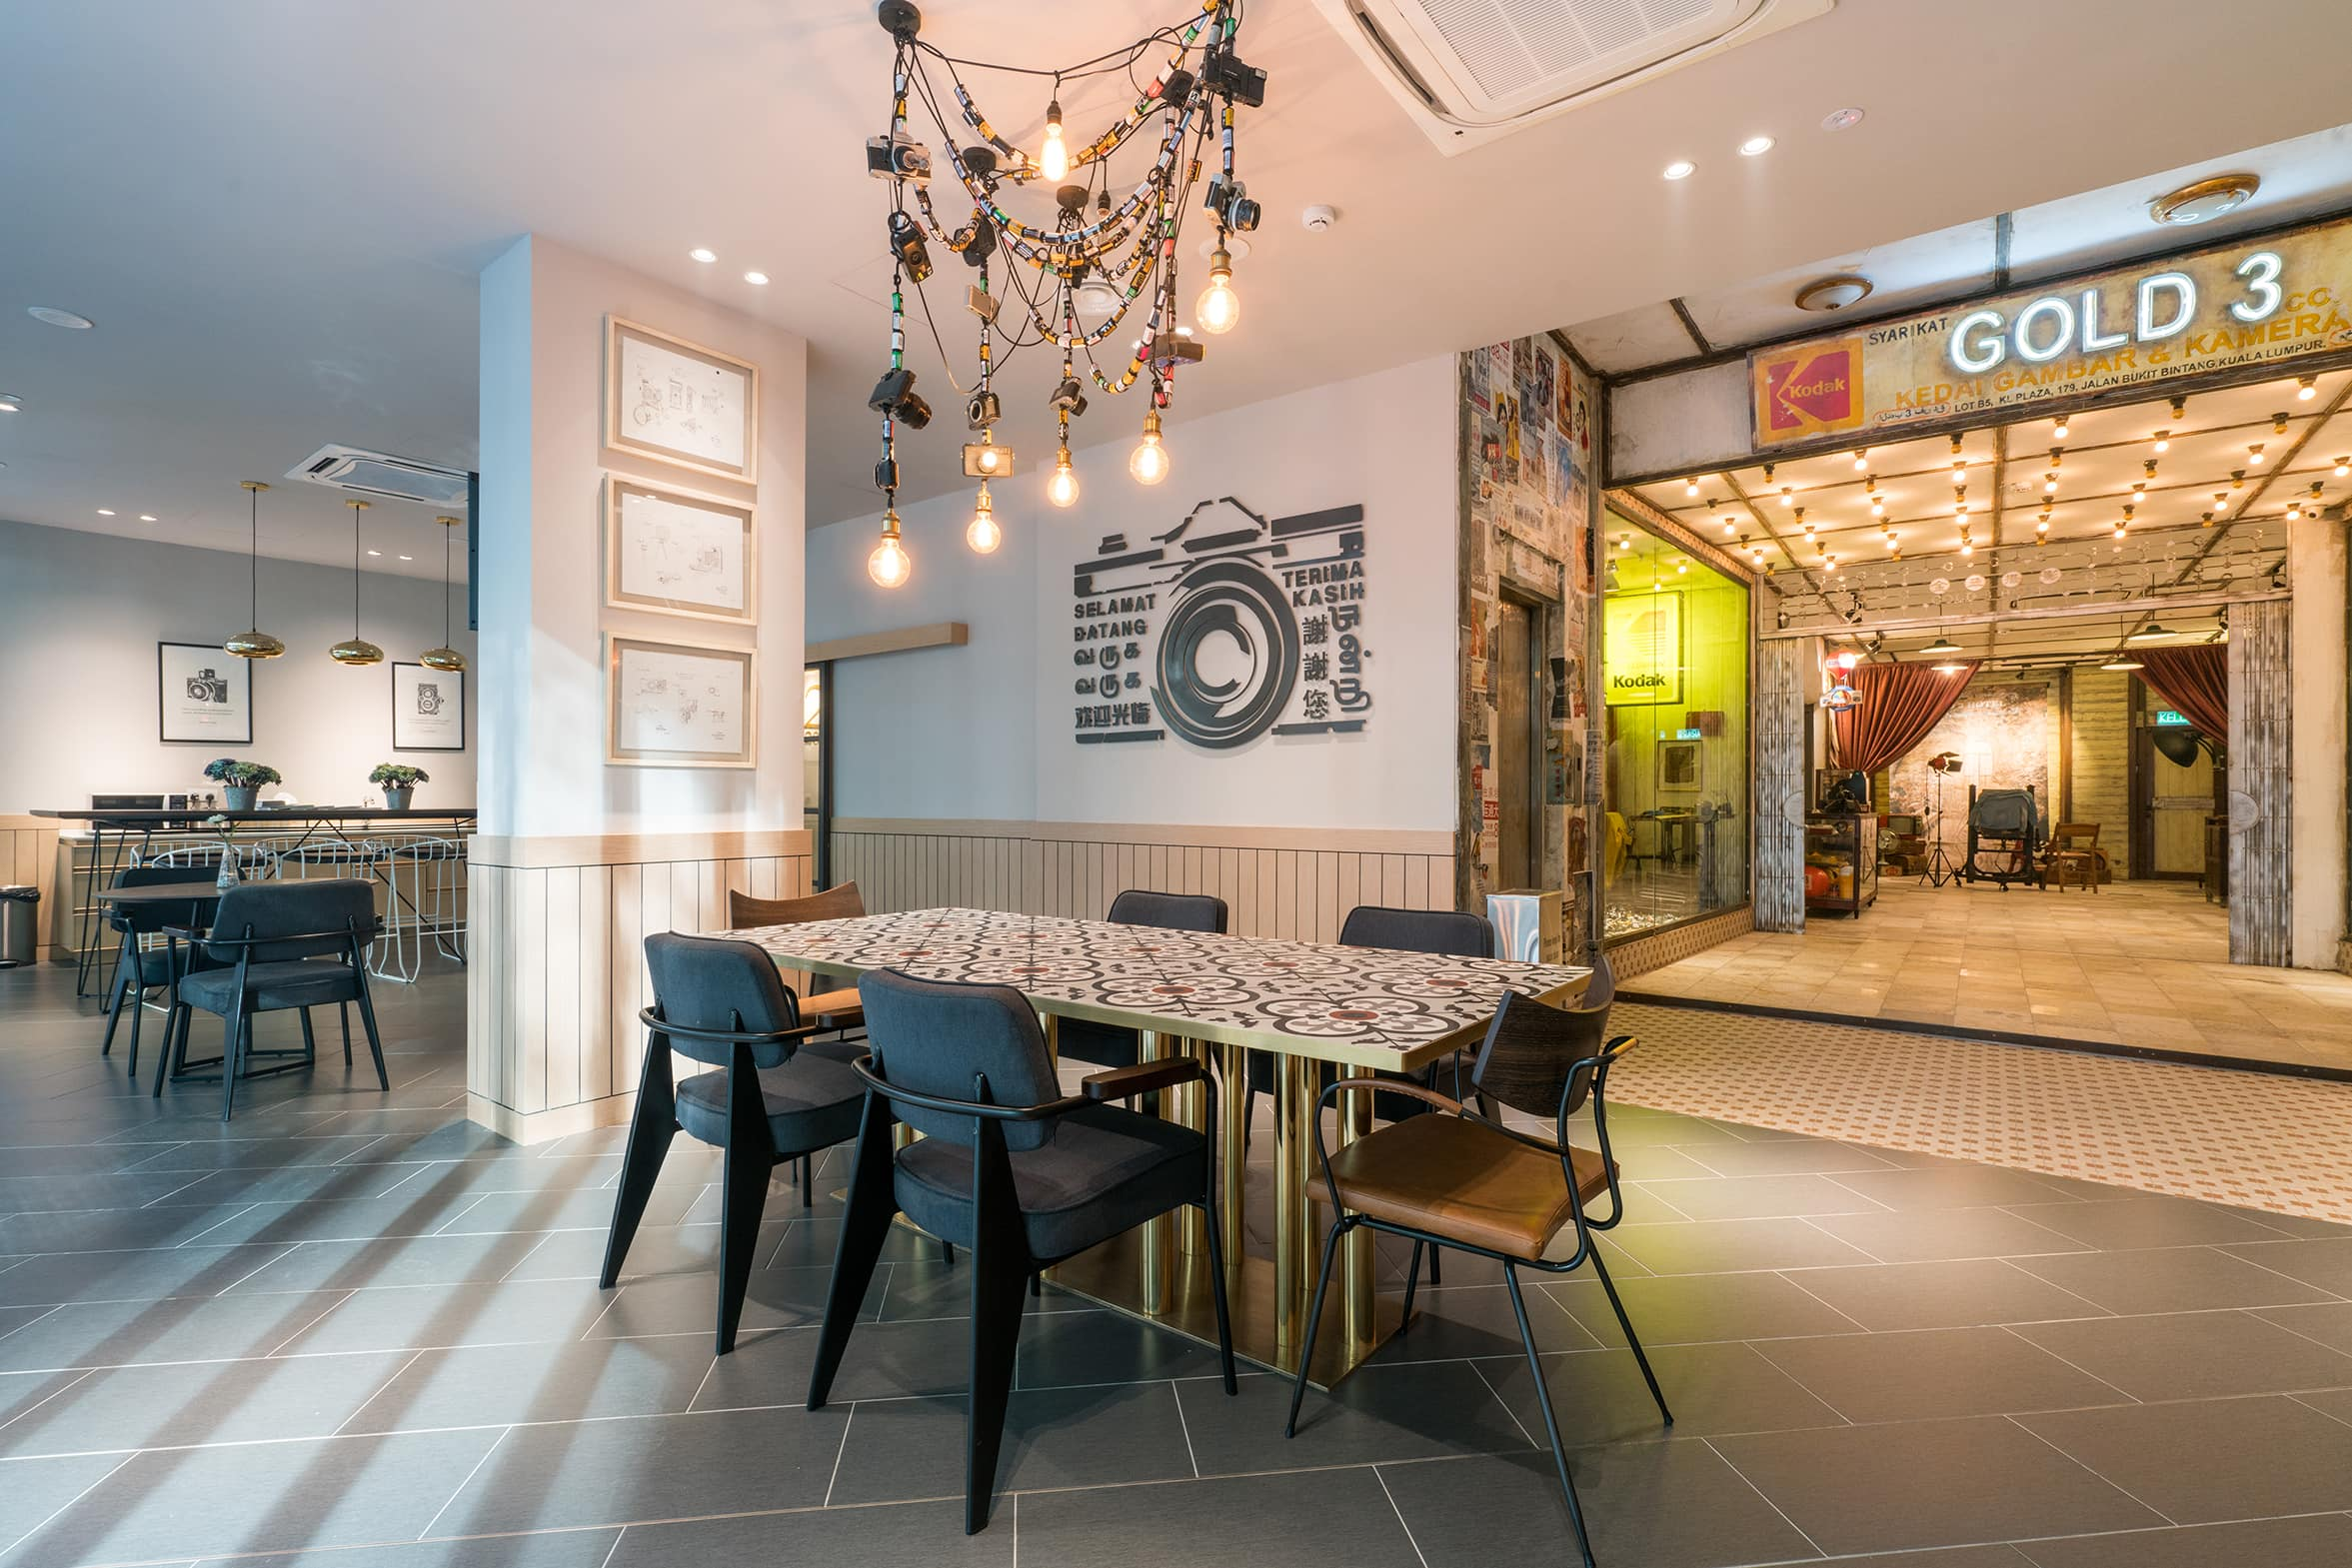 Gold 3 Boutique Hotel A Stylish Yet Affordable Stay At Gold3